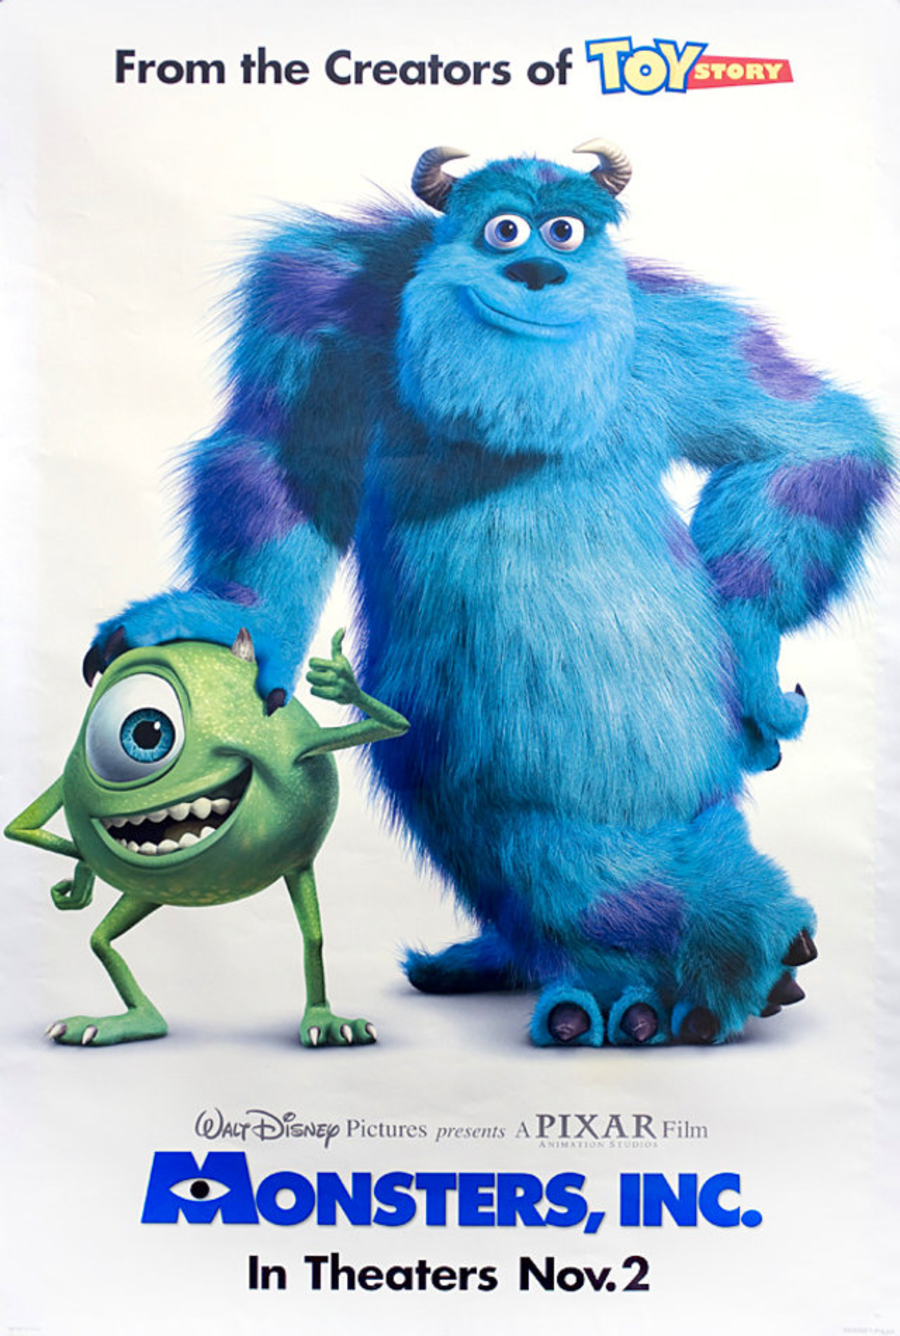 """<p>James P. Sullivan and his best friend, Mike Wazowski, are the top scary team at Monsters, Inc. Things go out of hand when """"Sulley"""" lets a human girl into Monstropolis and things turn upside down for the two scarers. </p><p><a class=""""link rapid-noclick-resp"""" href=""""https://go.redirectingat.com?id=74968X1596630&url=https%3A%2F%2Fwww.disneyplus.com%2Fmovies%2Fmonsters-inc%2F5vQuMGjgTZz5&sref=https%3A%2F%2Fwww.goodhousekeeping.com%2Flife%2Fentertainment%2Fg33651563%2Fdisney-halloween-movies%2F"""" rel=""""nofollow noopener"""" target=""""_blank"""" data-ylk=""""slk:WATCH NOW"""">WATCH NOW</a></p>"""